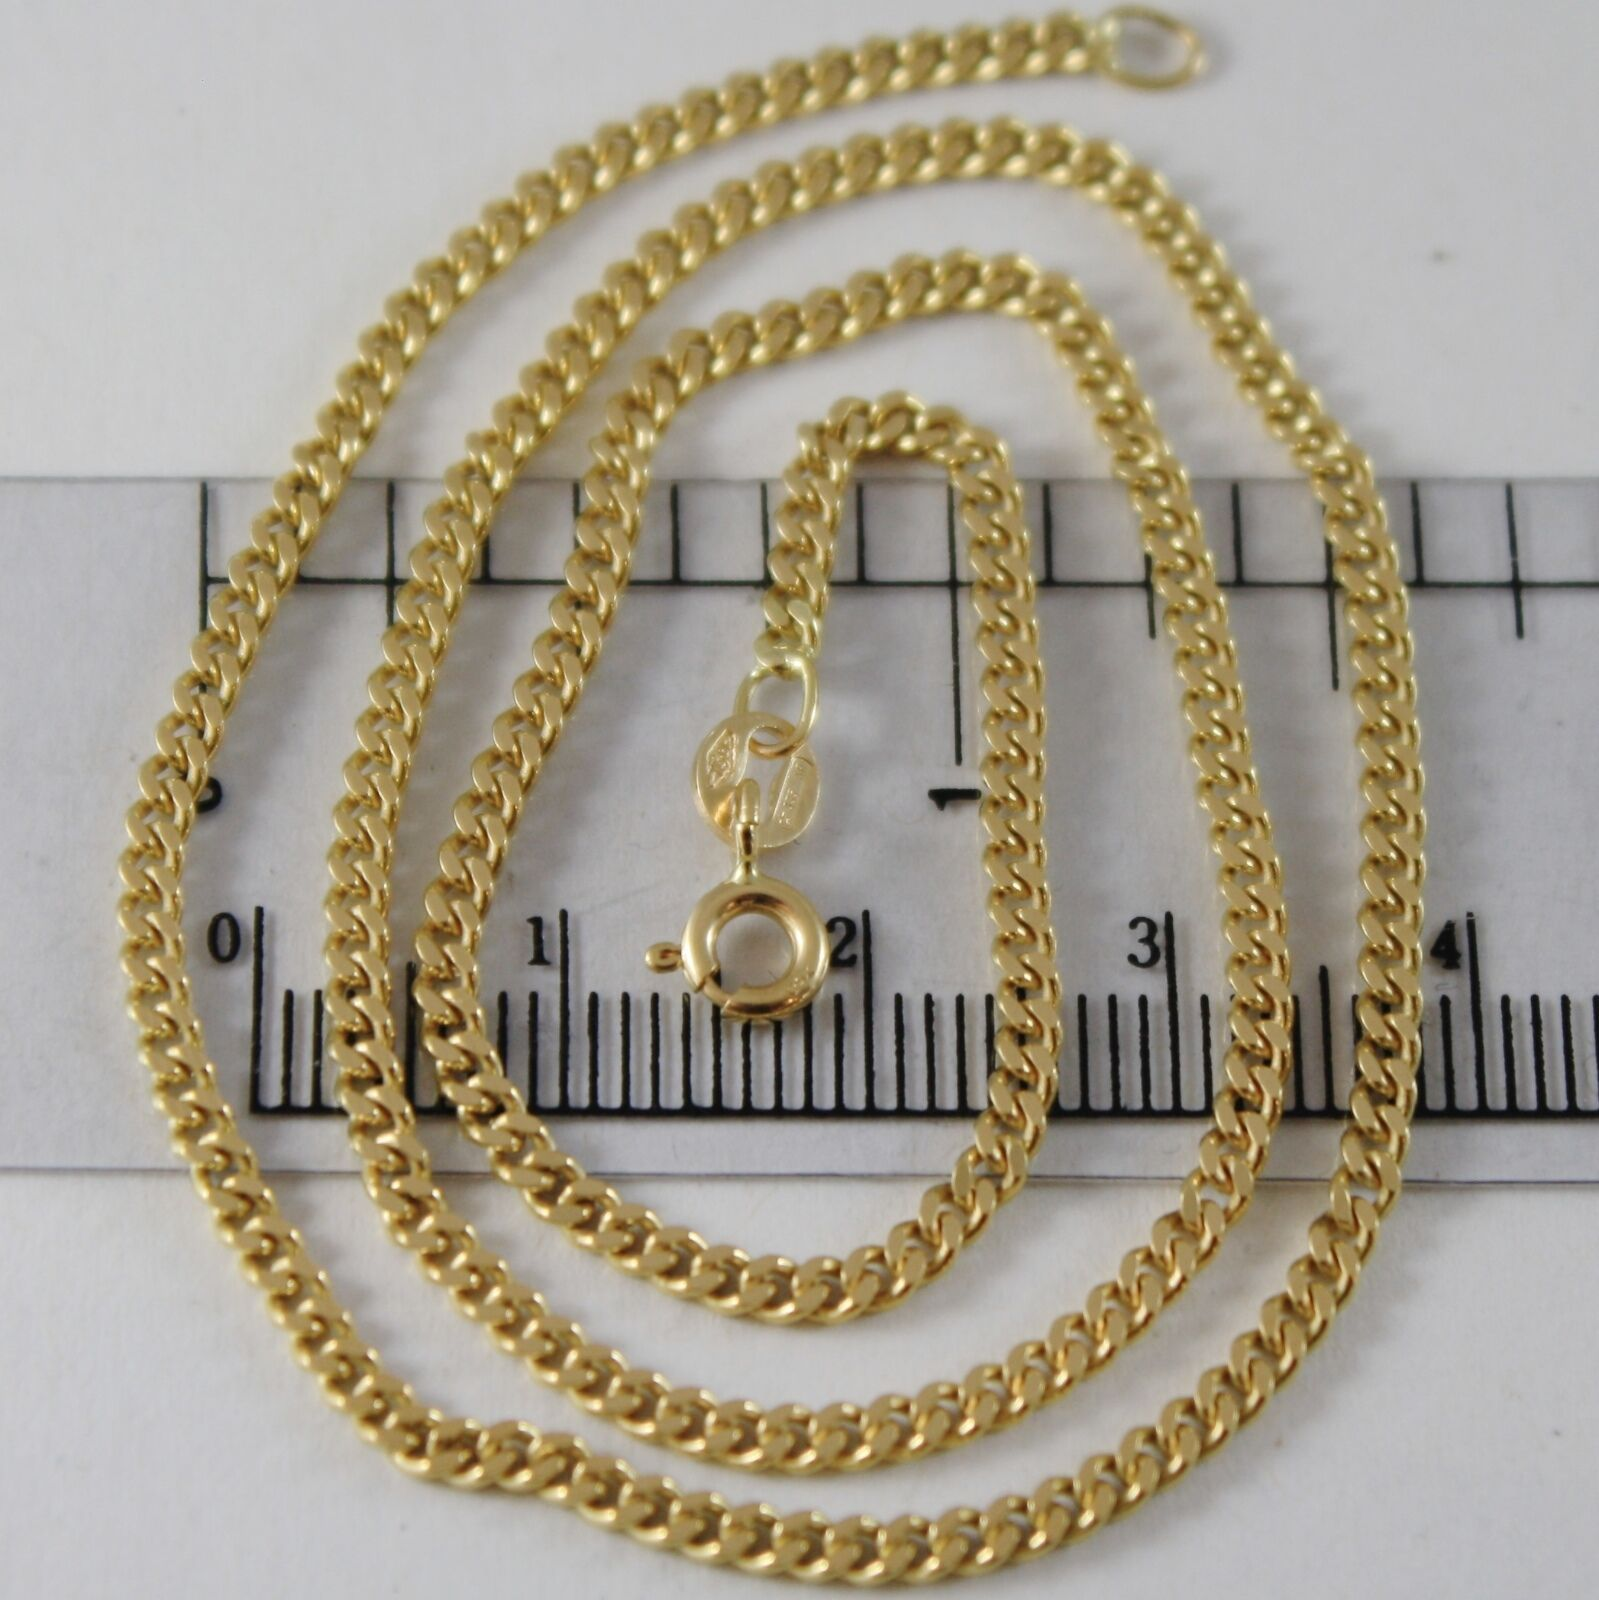 18K YELLOW GOLD CHAIN LITTLE GOURMETTE LINK 2 MM, 19.70 INCHES MADE IN ITALY